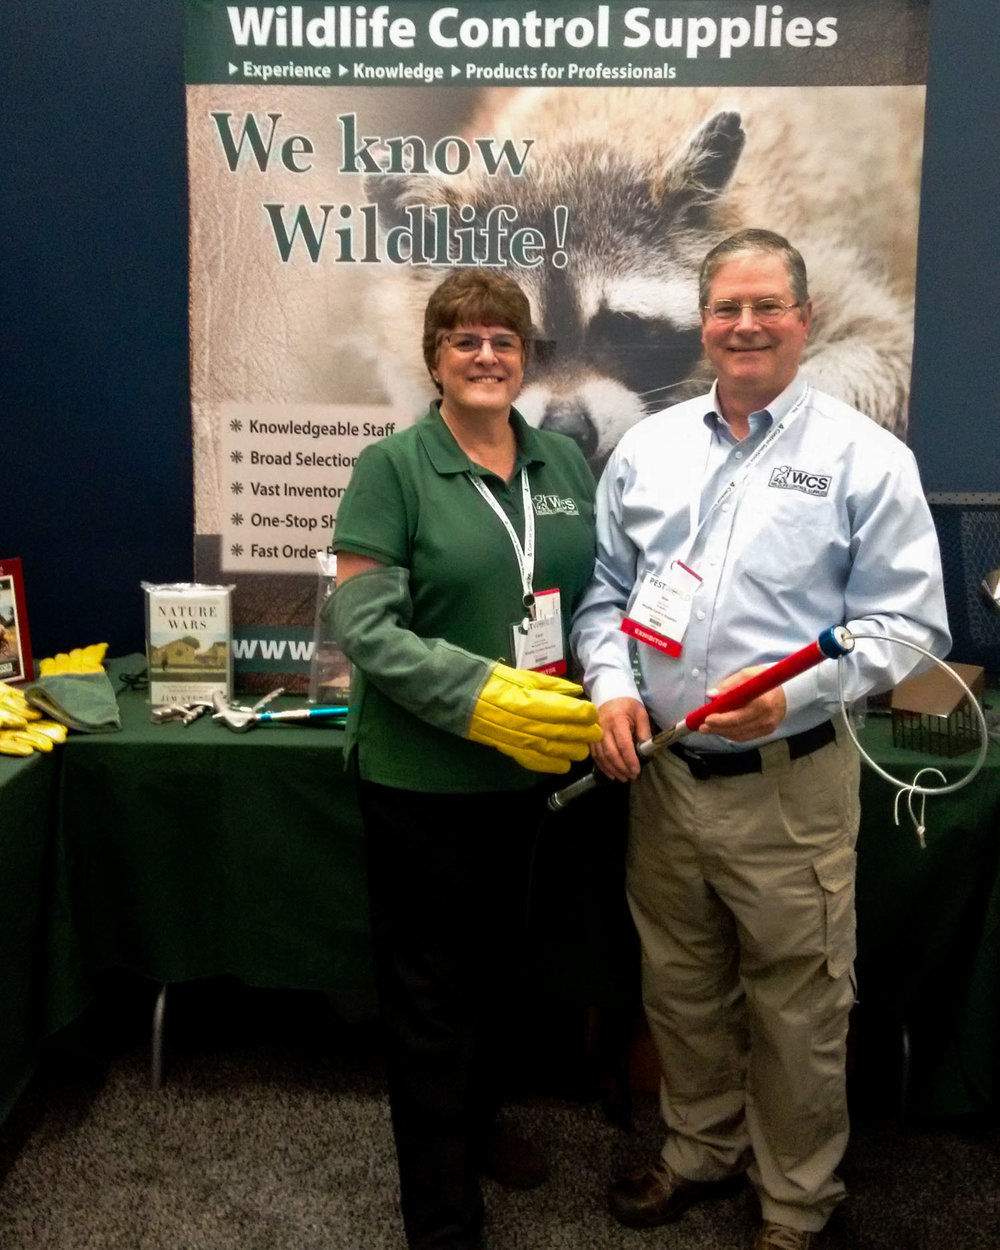 Carol Huot (right) and Alan Huot (left) / Wildlife Control Supplies